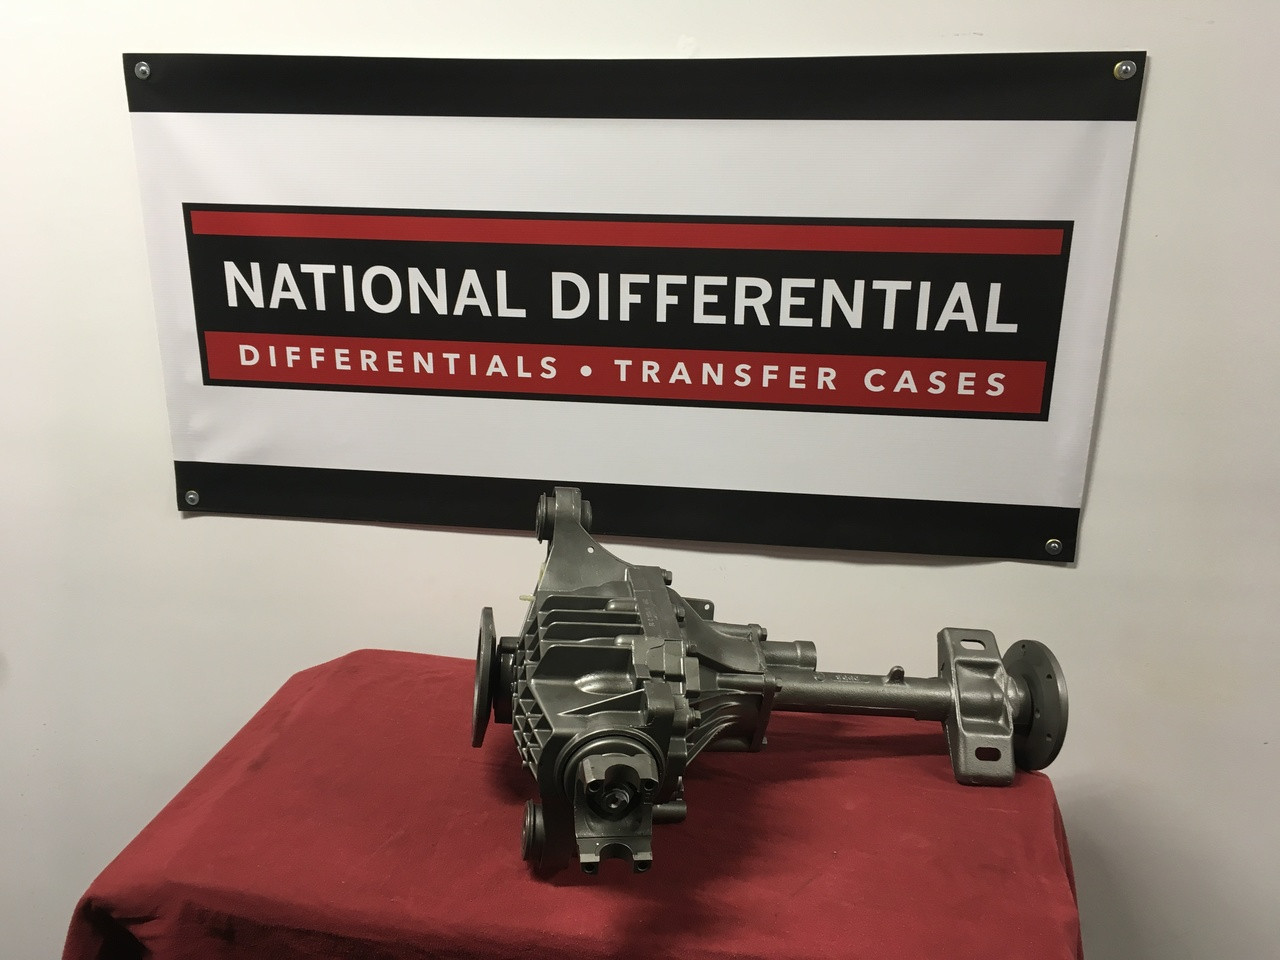 8.25-inch Front Differential for 1992-1998 Chevrolet Suburban available with a 3.42, 3.73, or 4.10 gear ratios